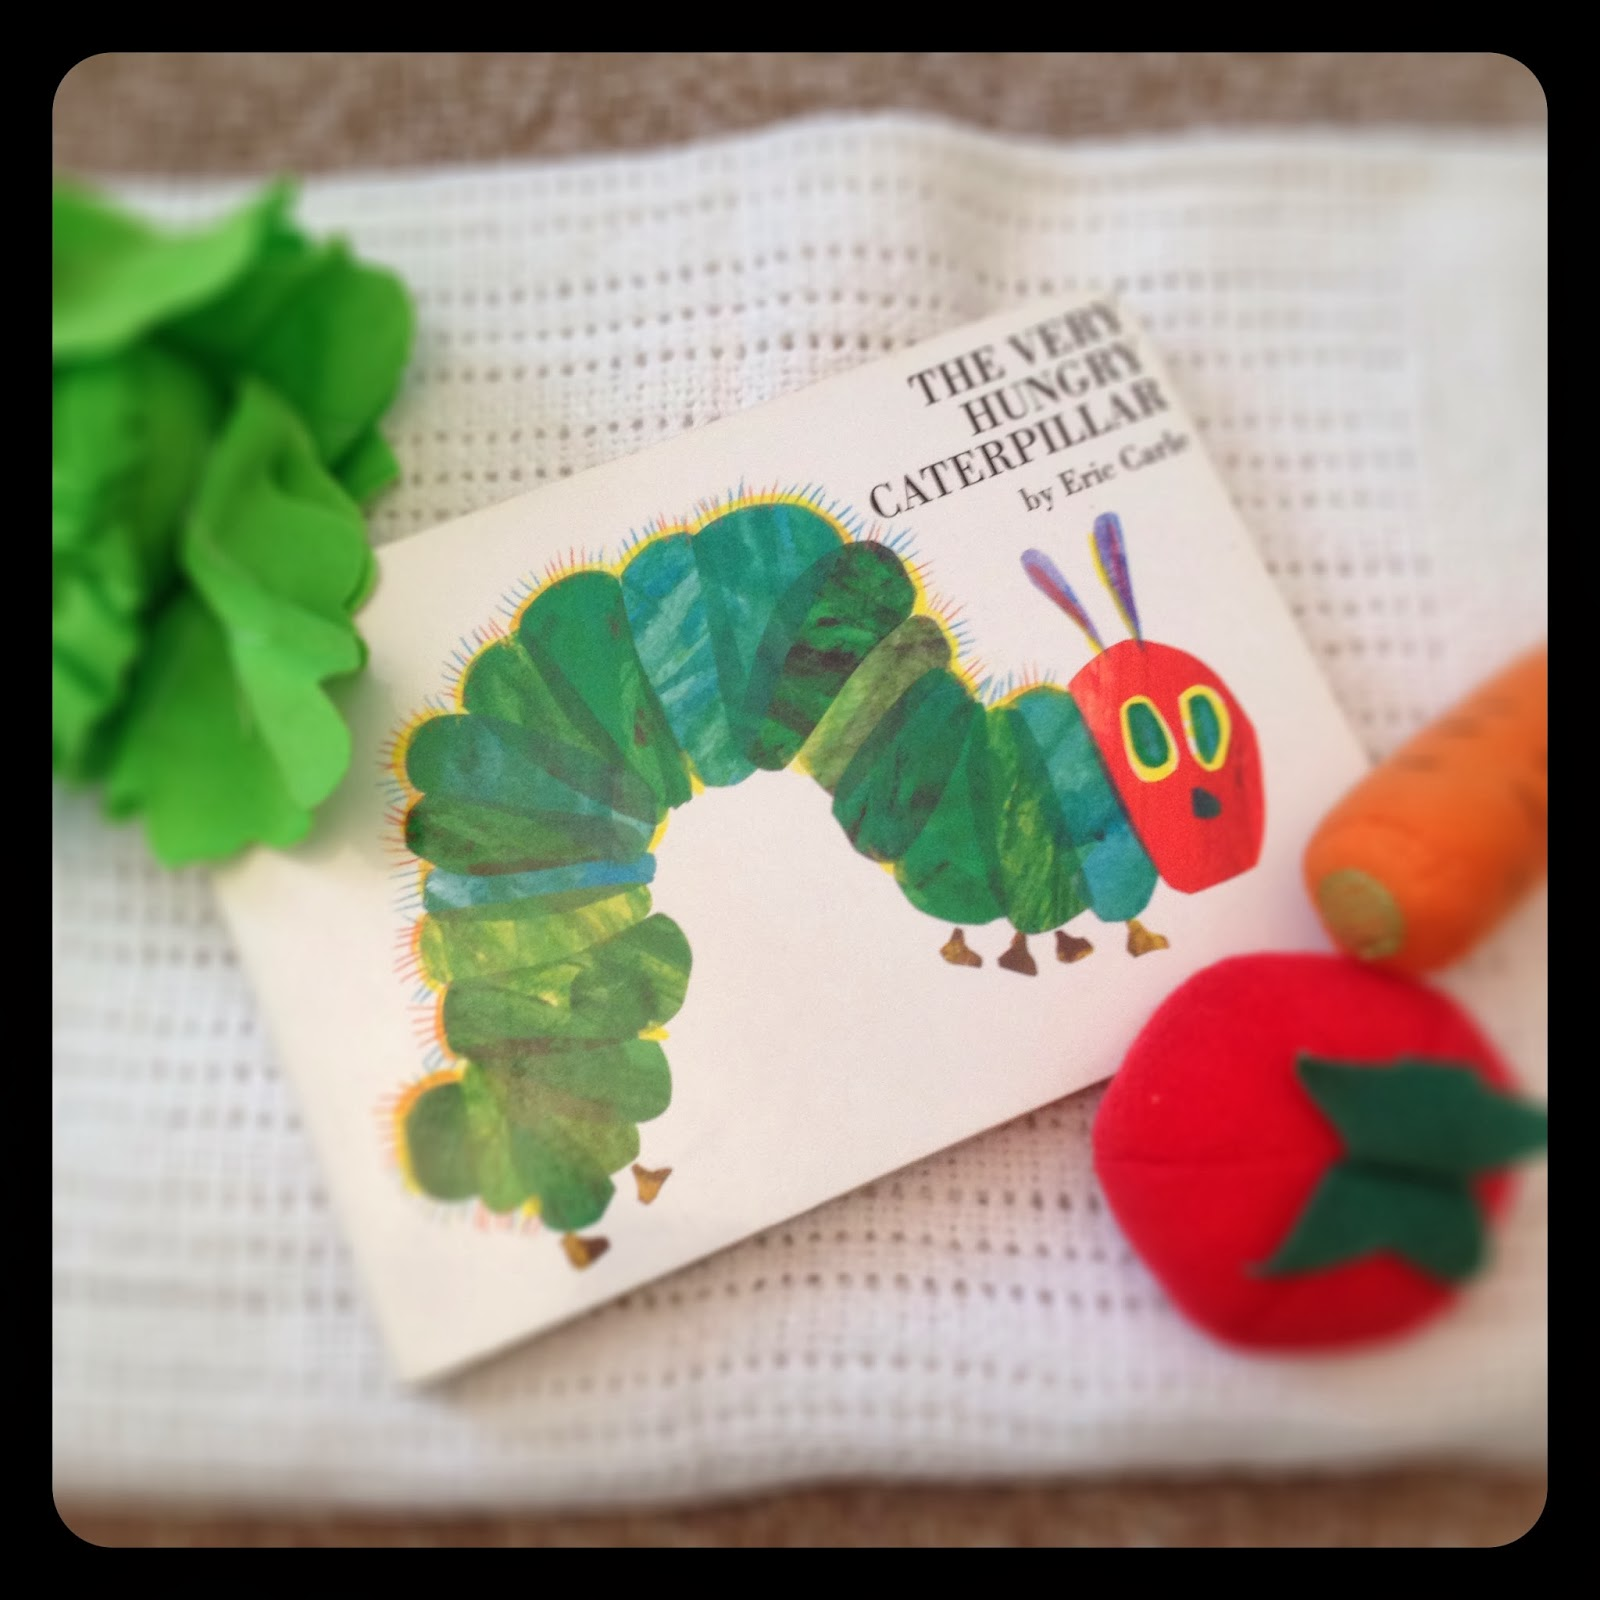 The Very Hungry Caterpillar is a must-have book for every child